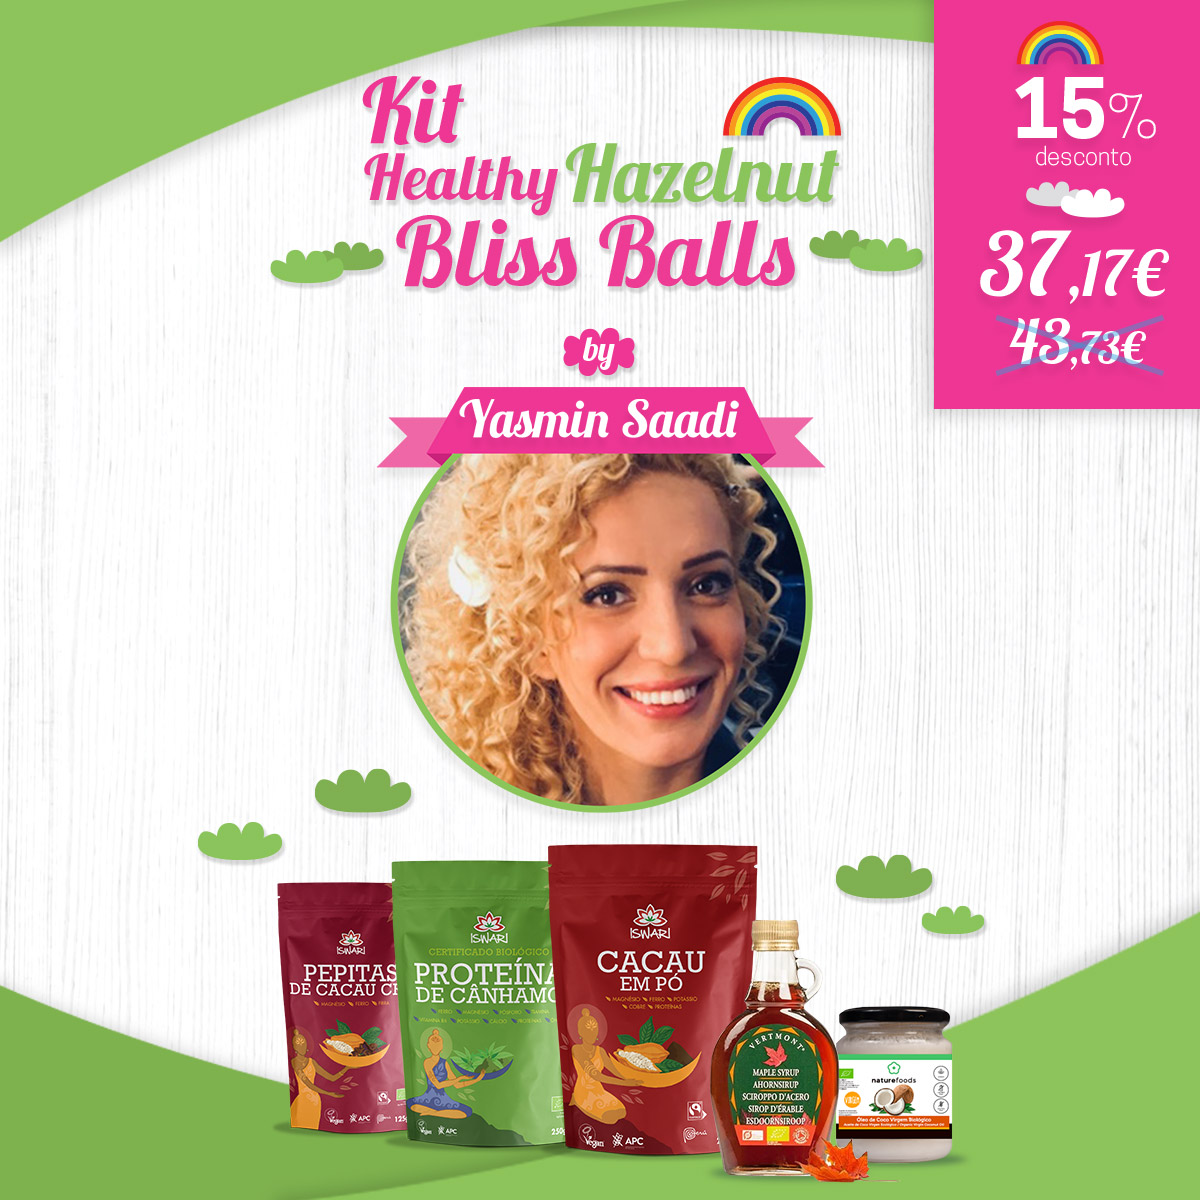 Kit Healthy Hazelnut Bliss Balls by Y. Saadi 1